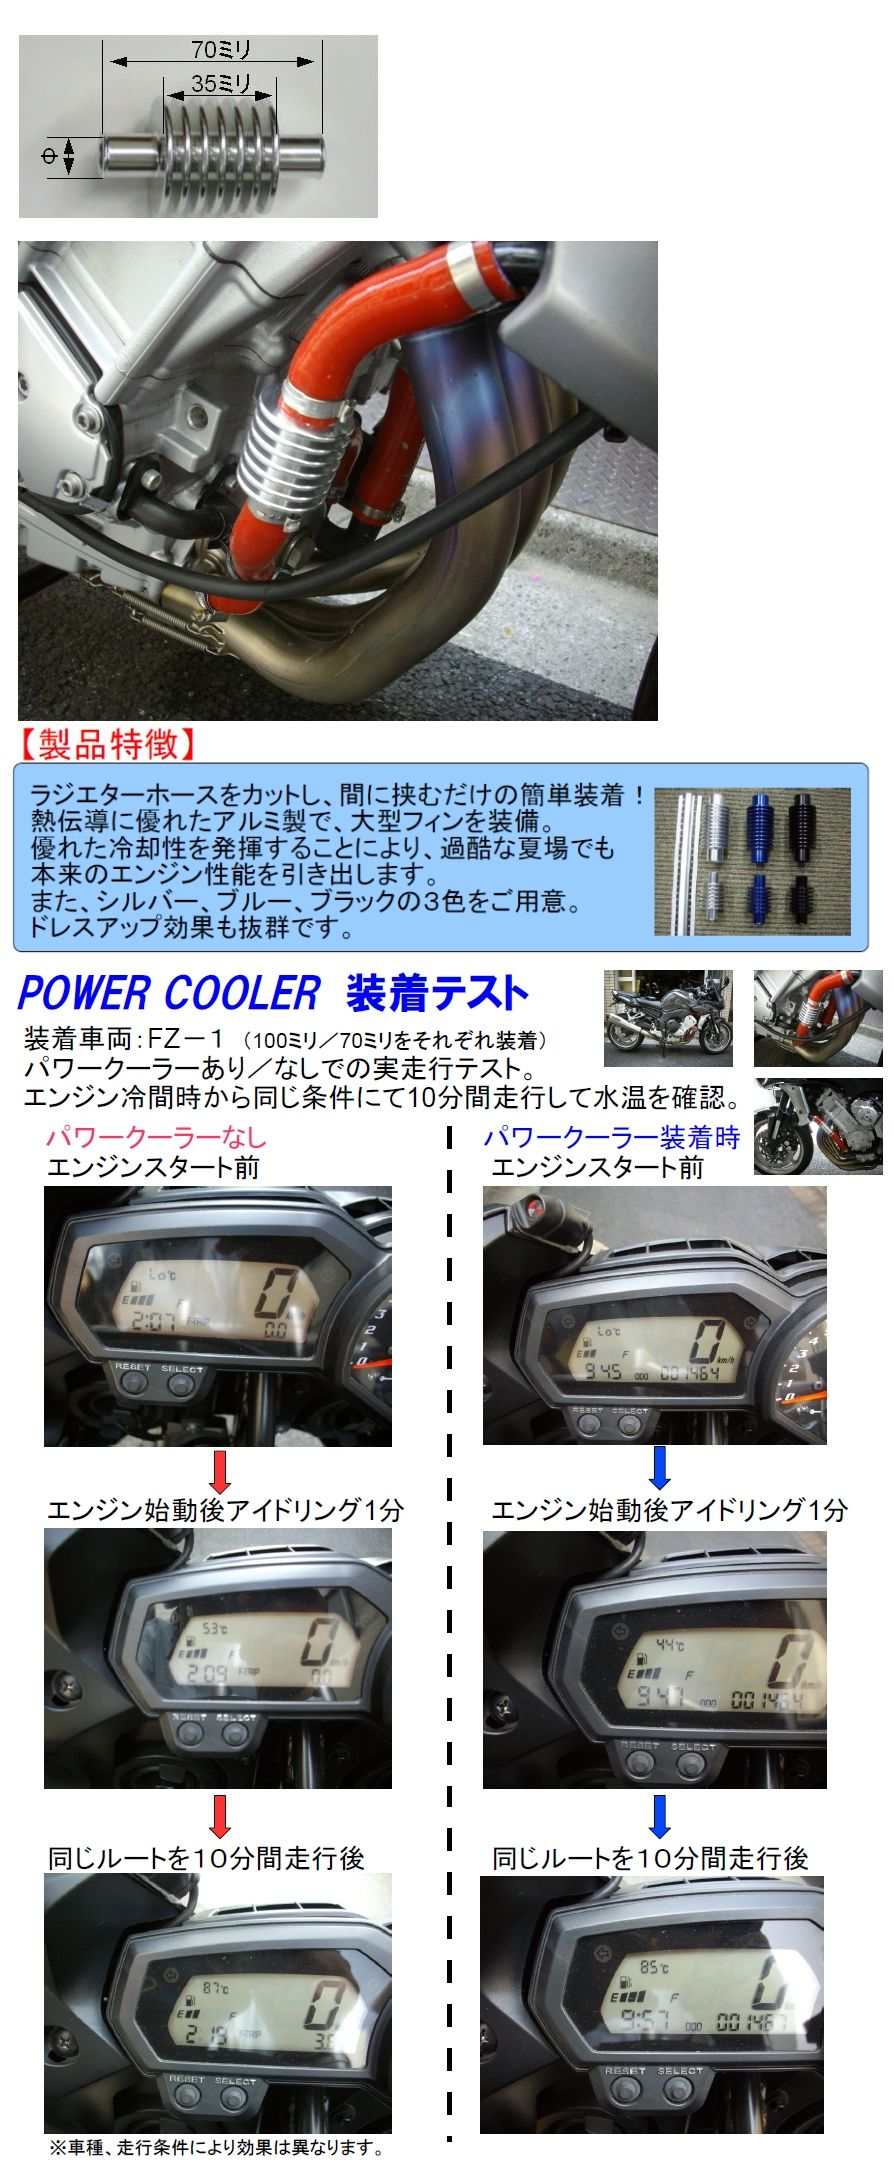 Power cooler冷卻器